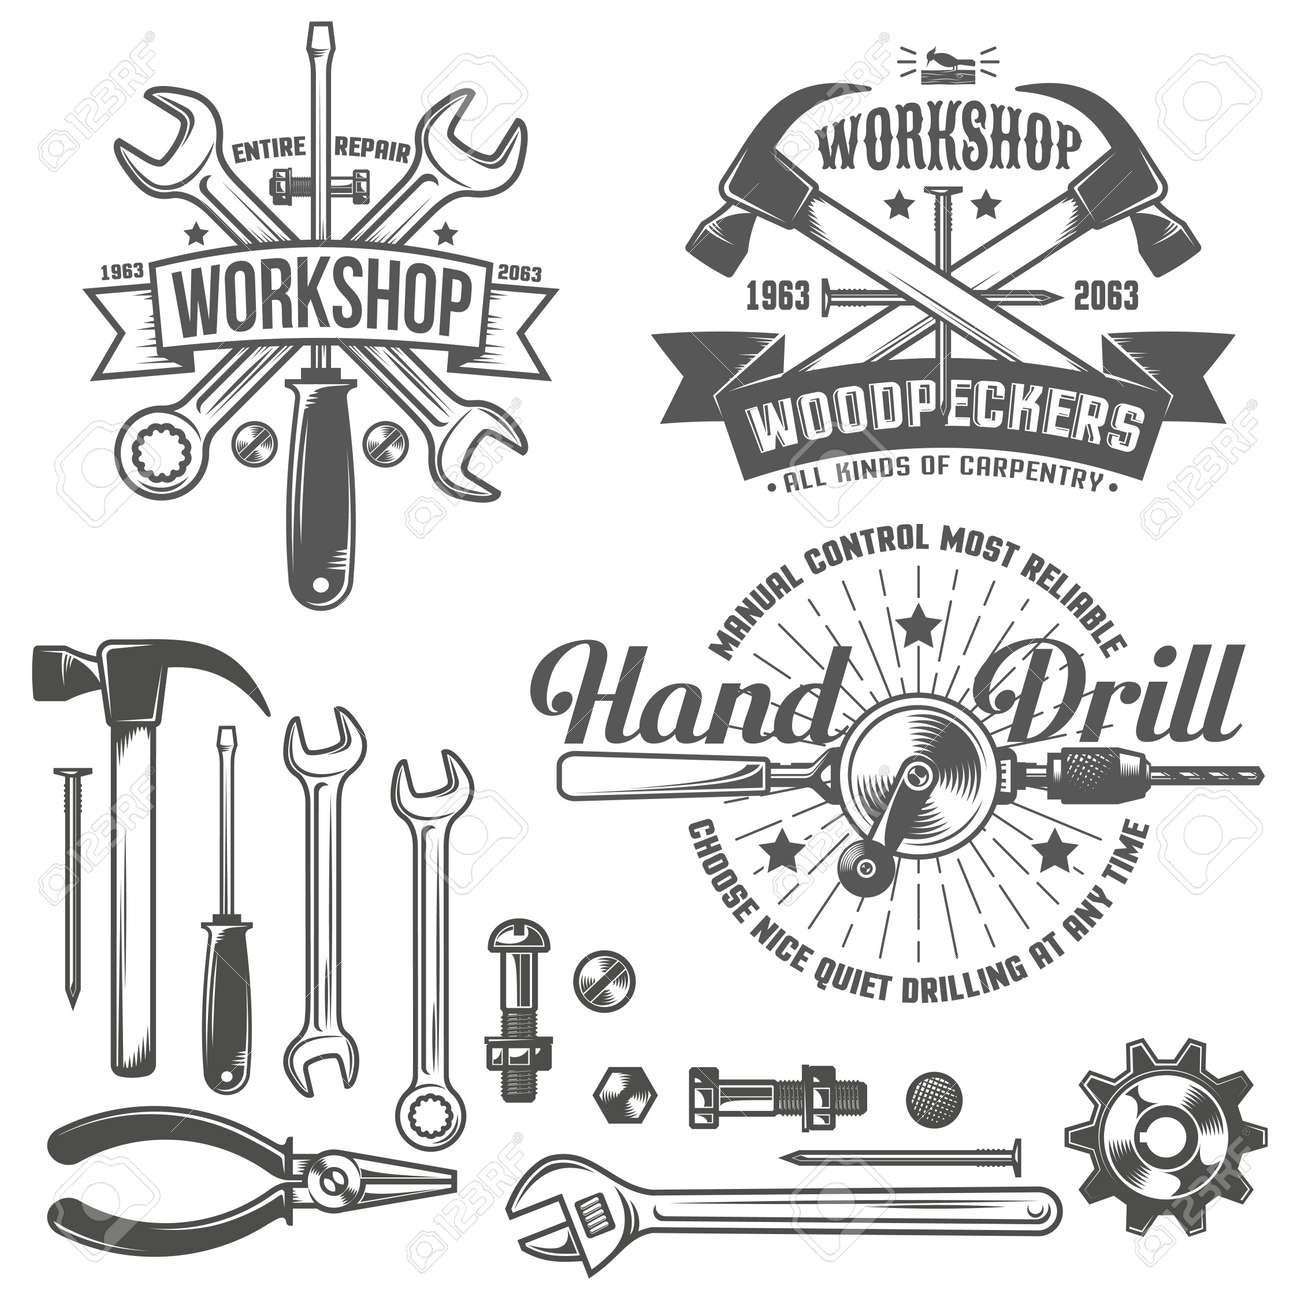 Vintage emblem repair workshop and tool shop in vintage style. Working tools. Text on a separate layer - easy to replace. - 55677324